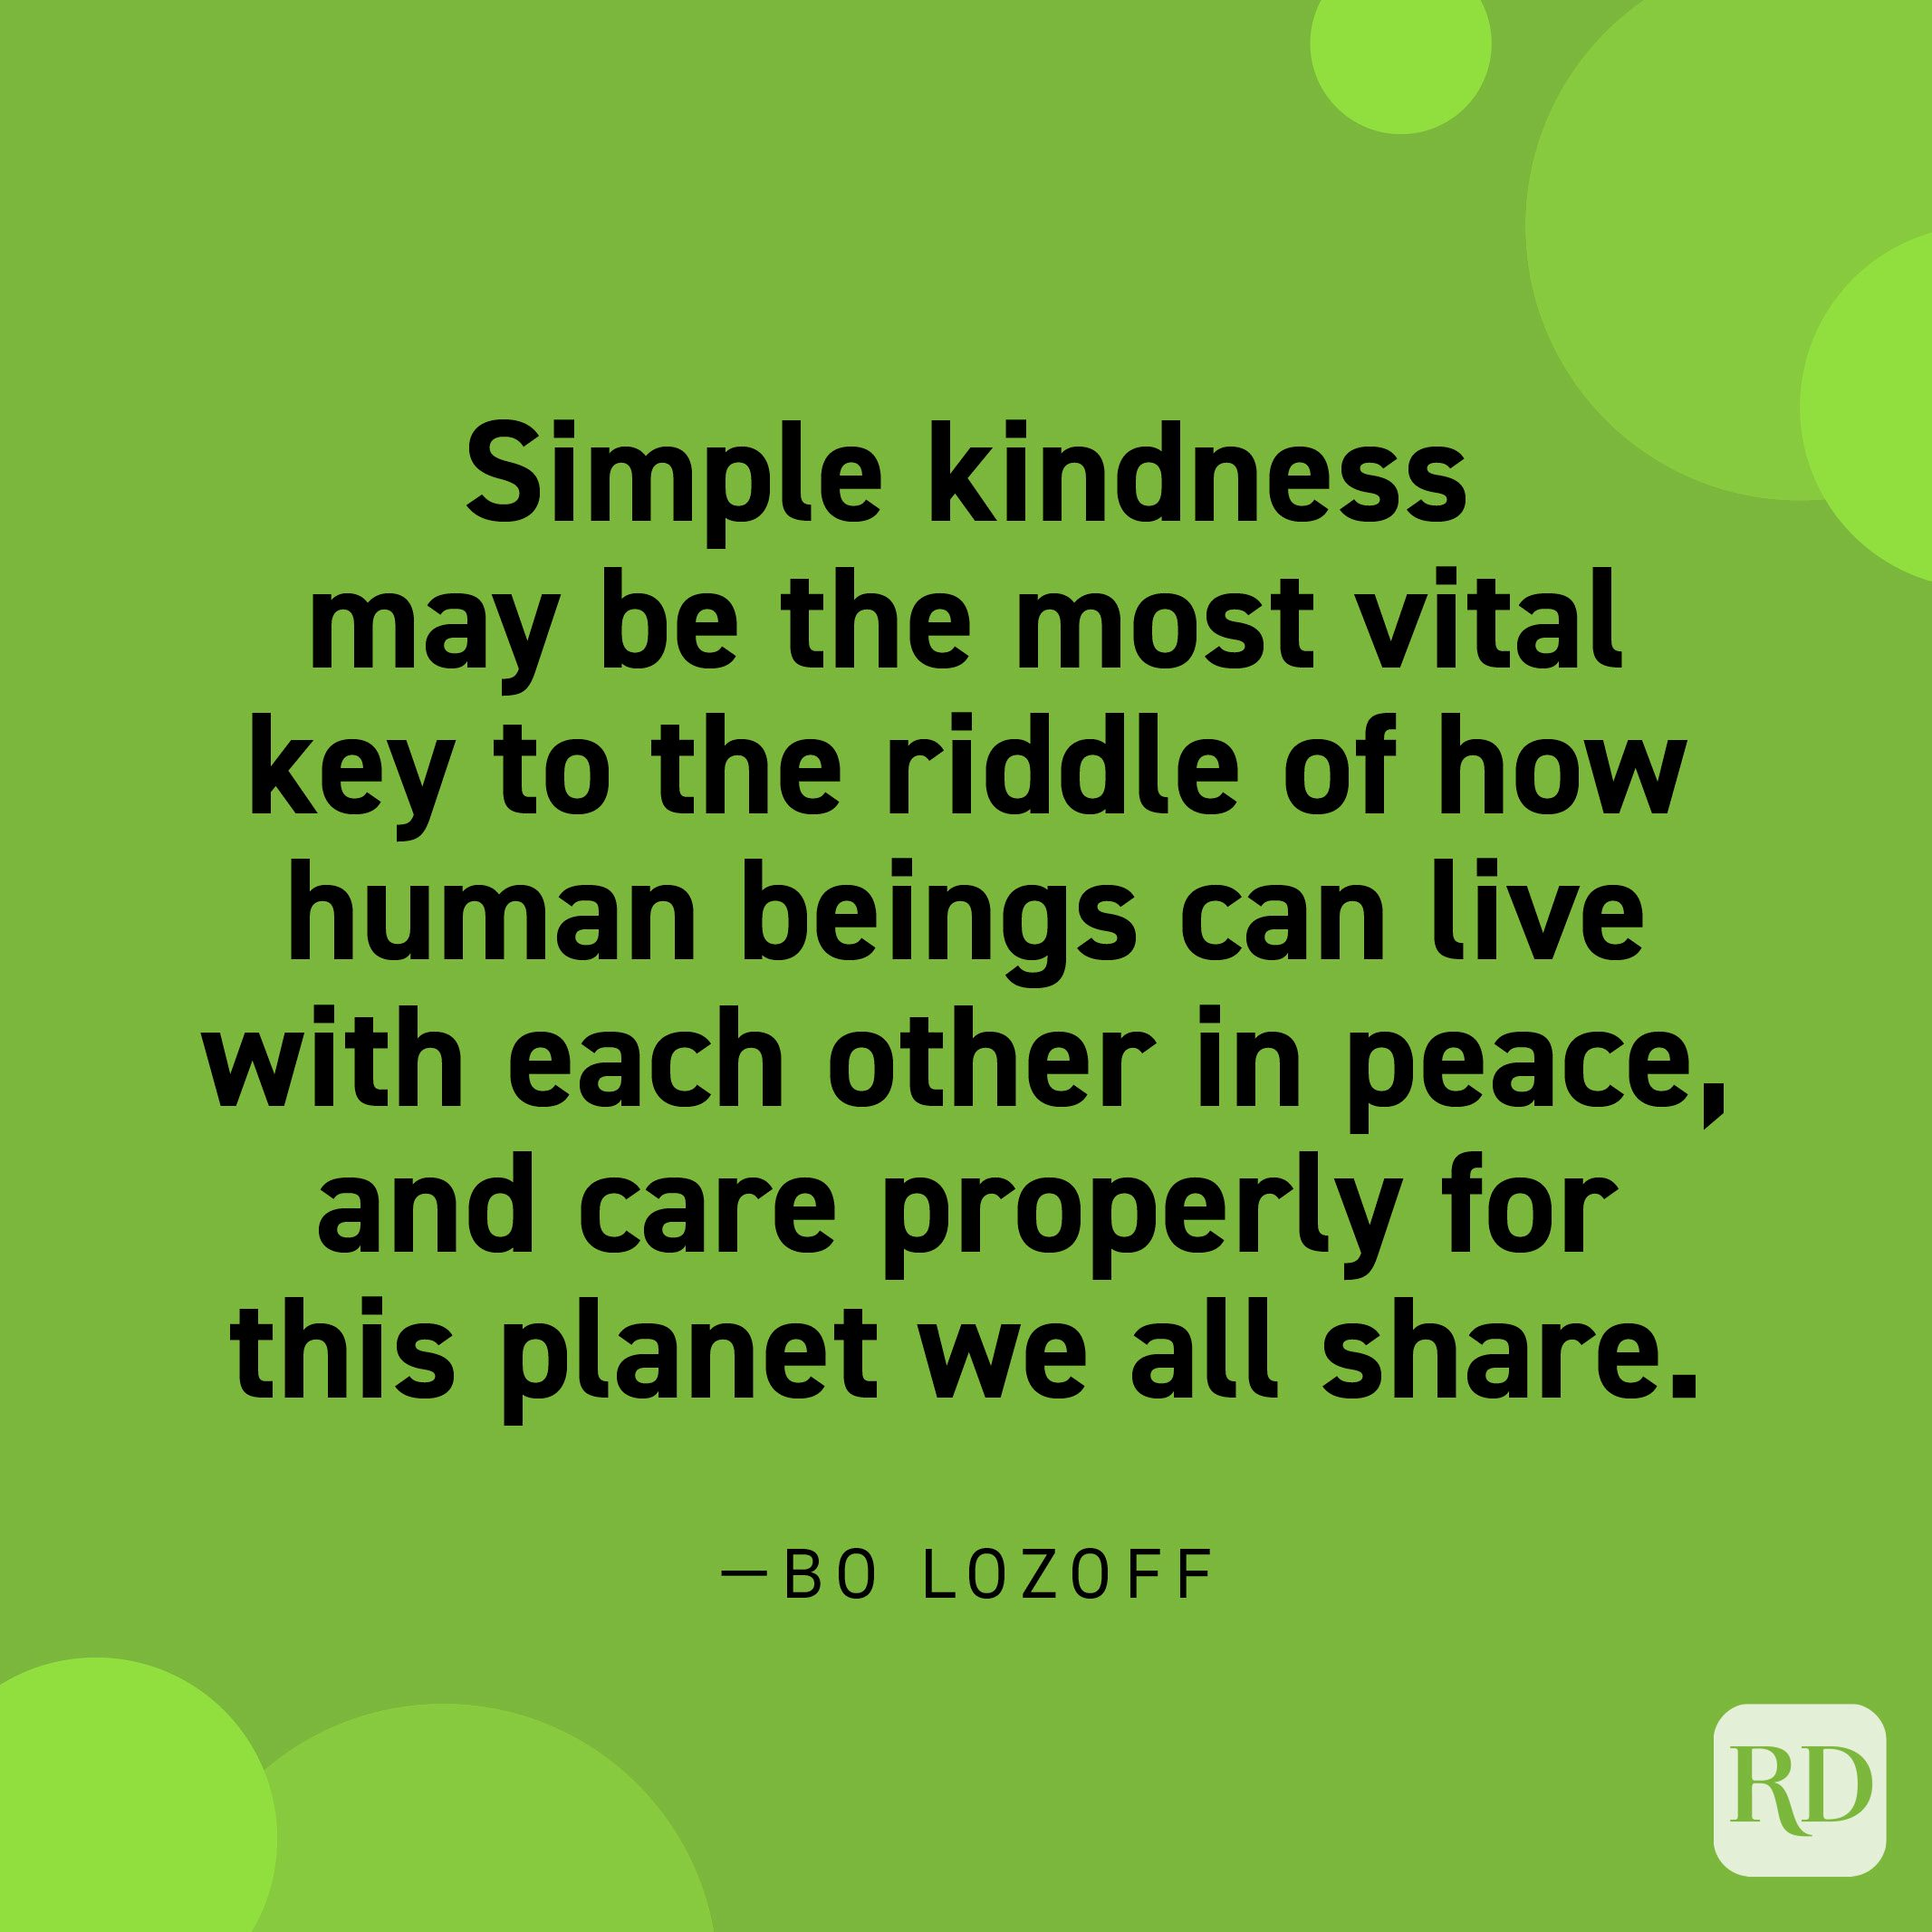 """""""Simple kindness may be the most vital key to the riddle of how human beings can live with each other in peace, and care properly for this planet we all share."""" —Bo Lozoff."""